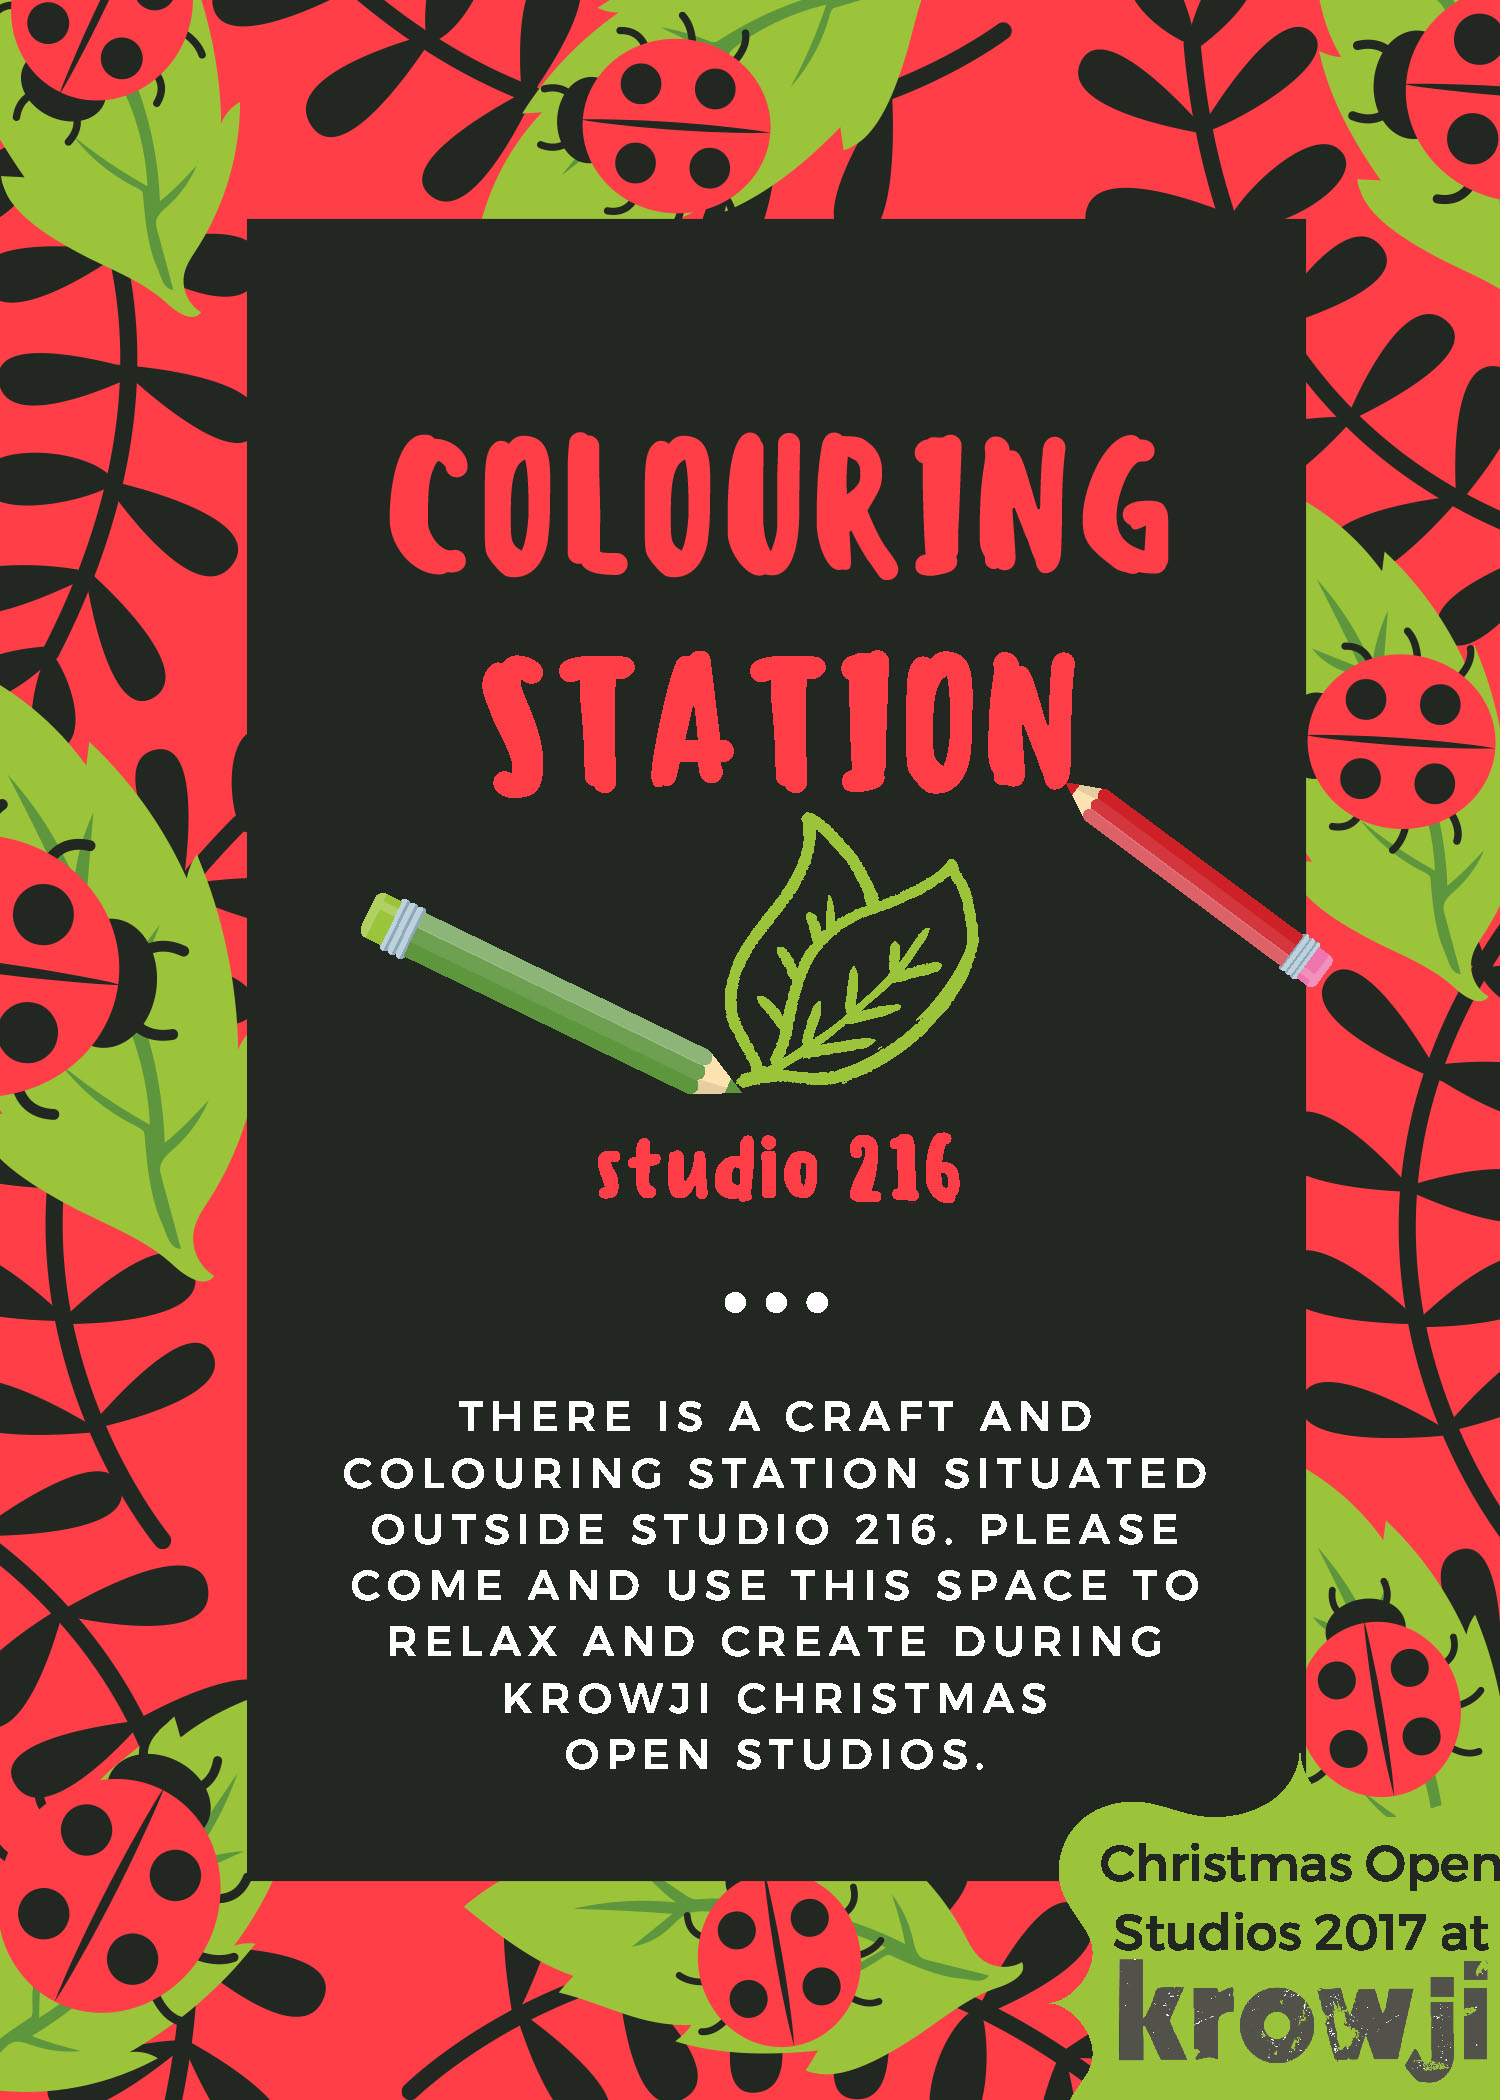 colouring station